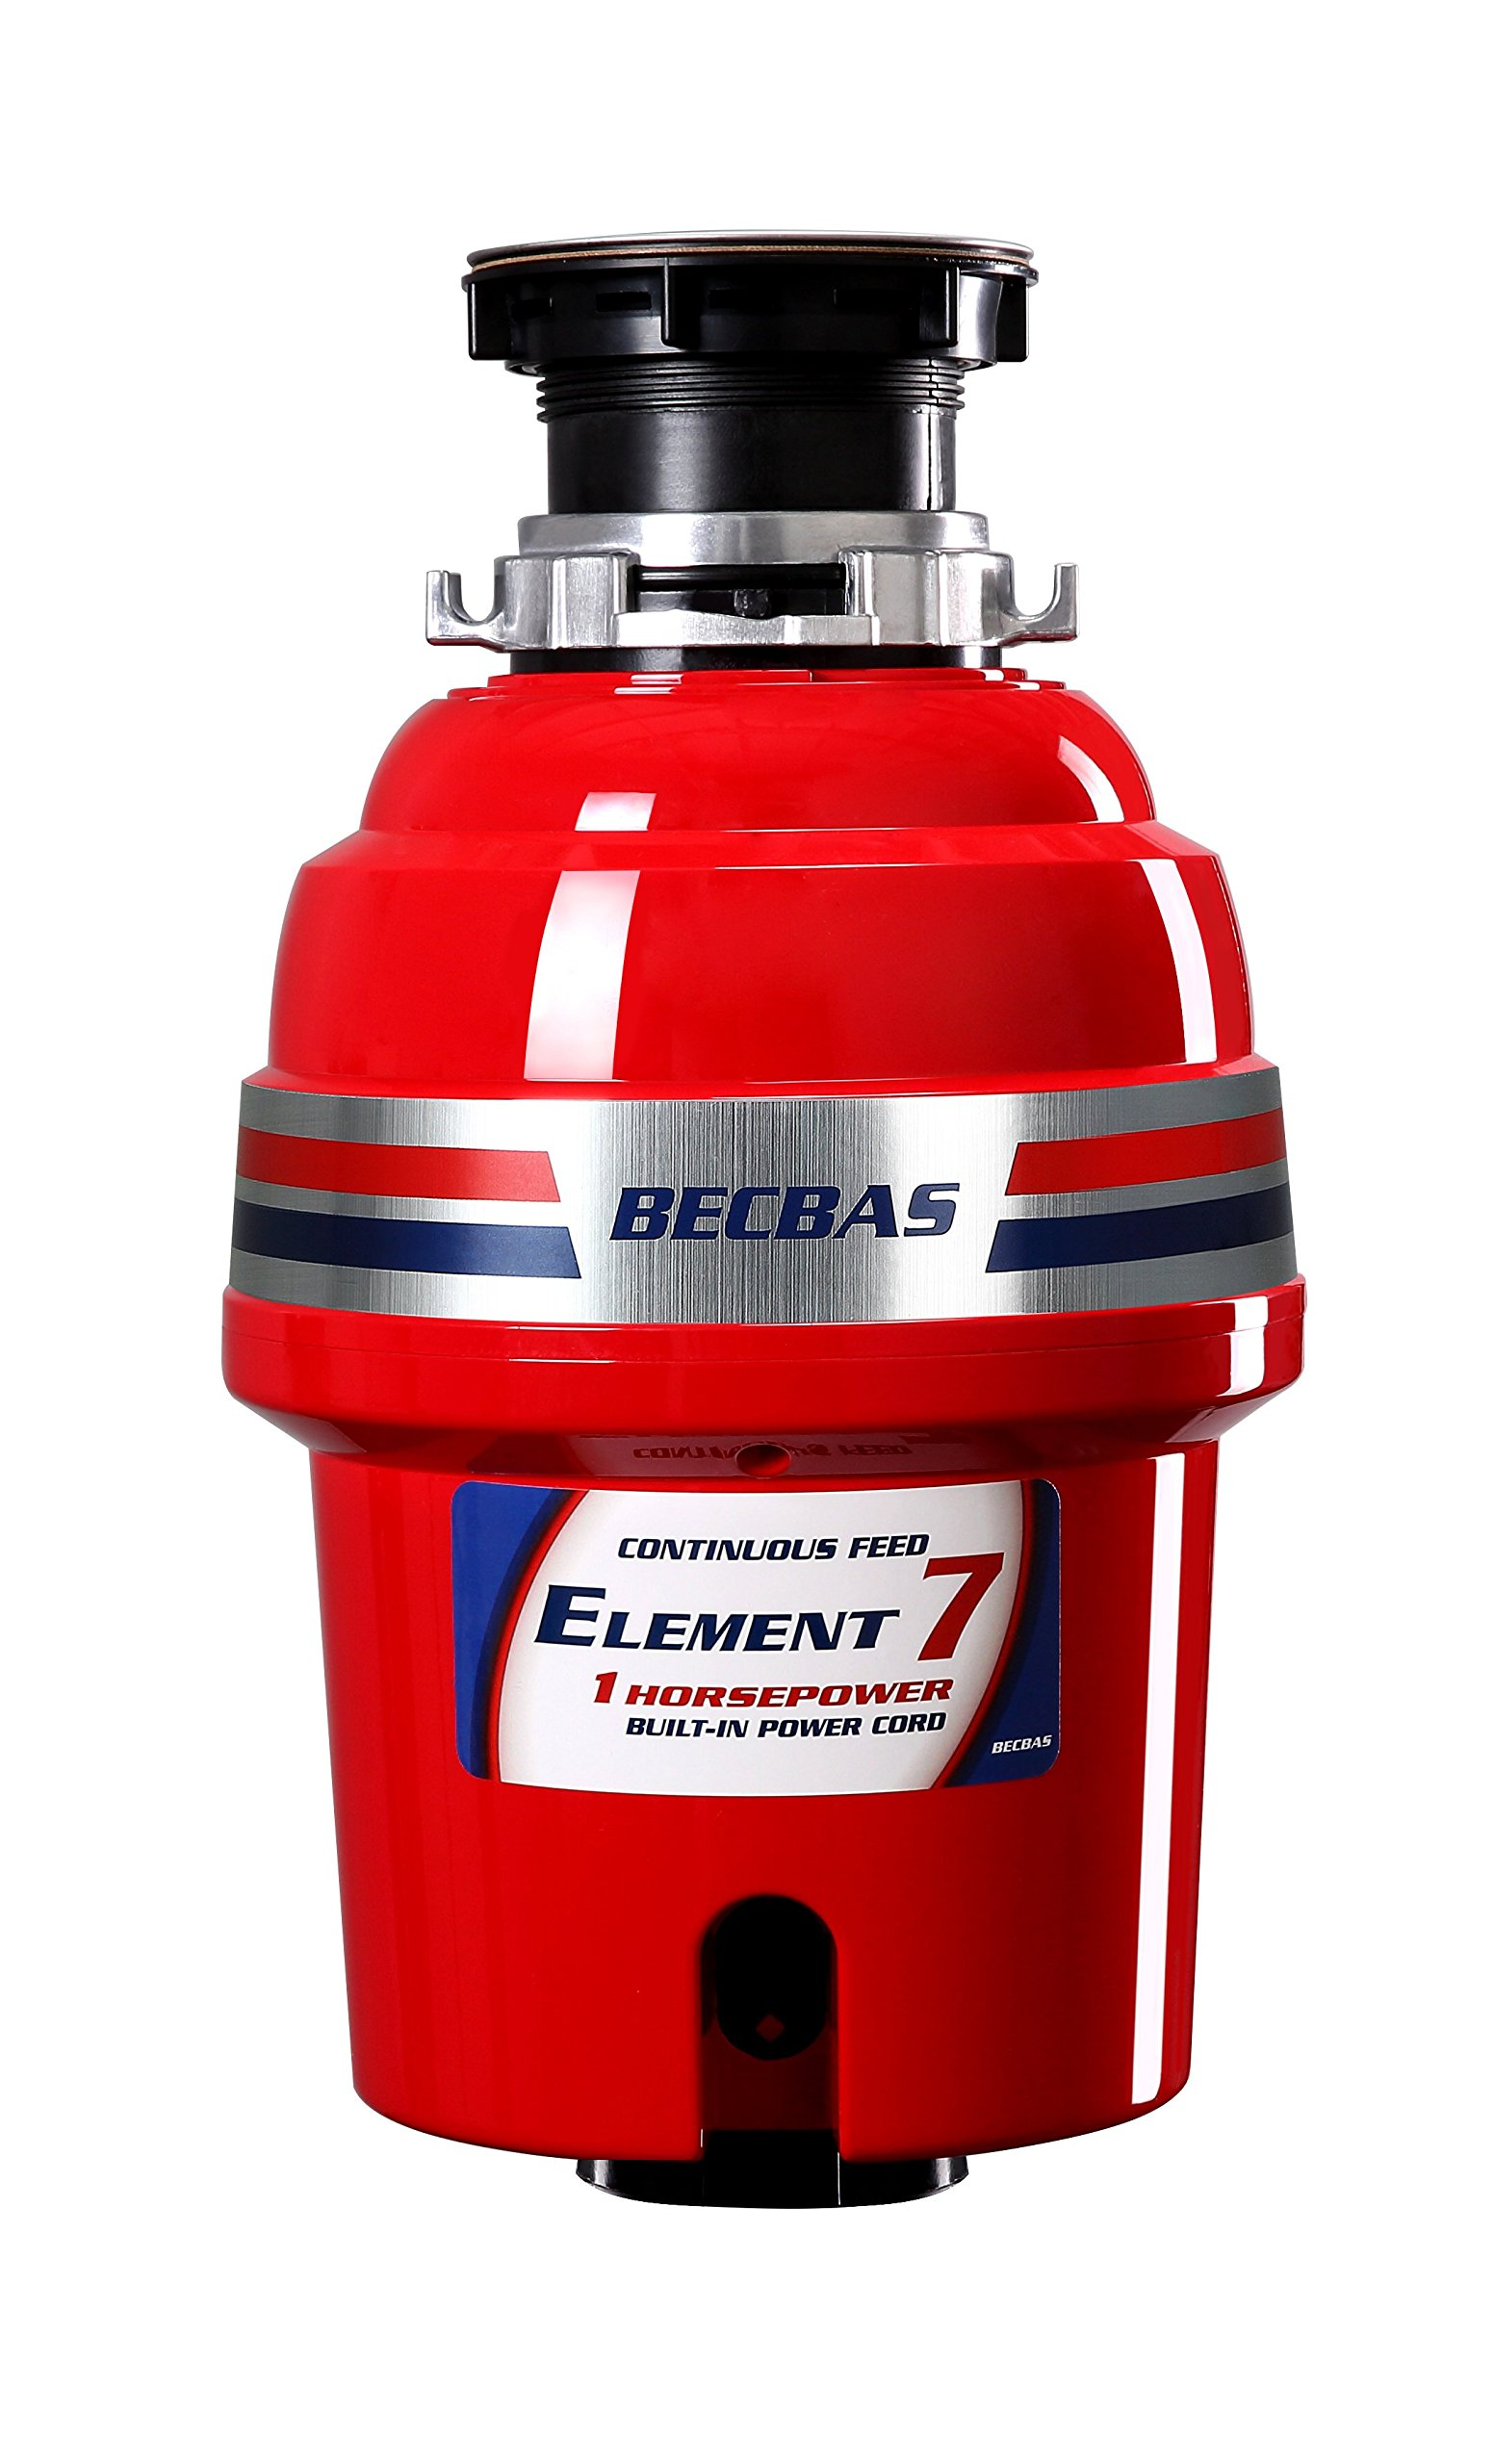 BECBAS ELEMENT 7 Garbage Disposal,1HP High Torque Household Food Waste Disposer